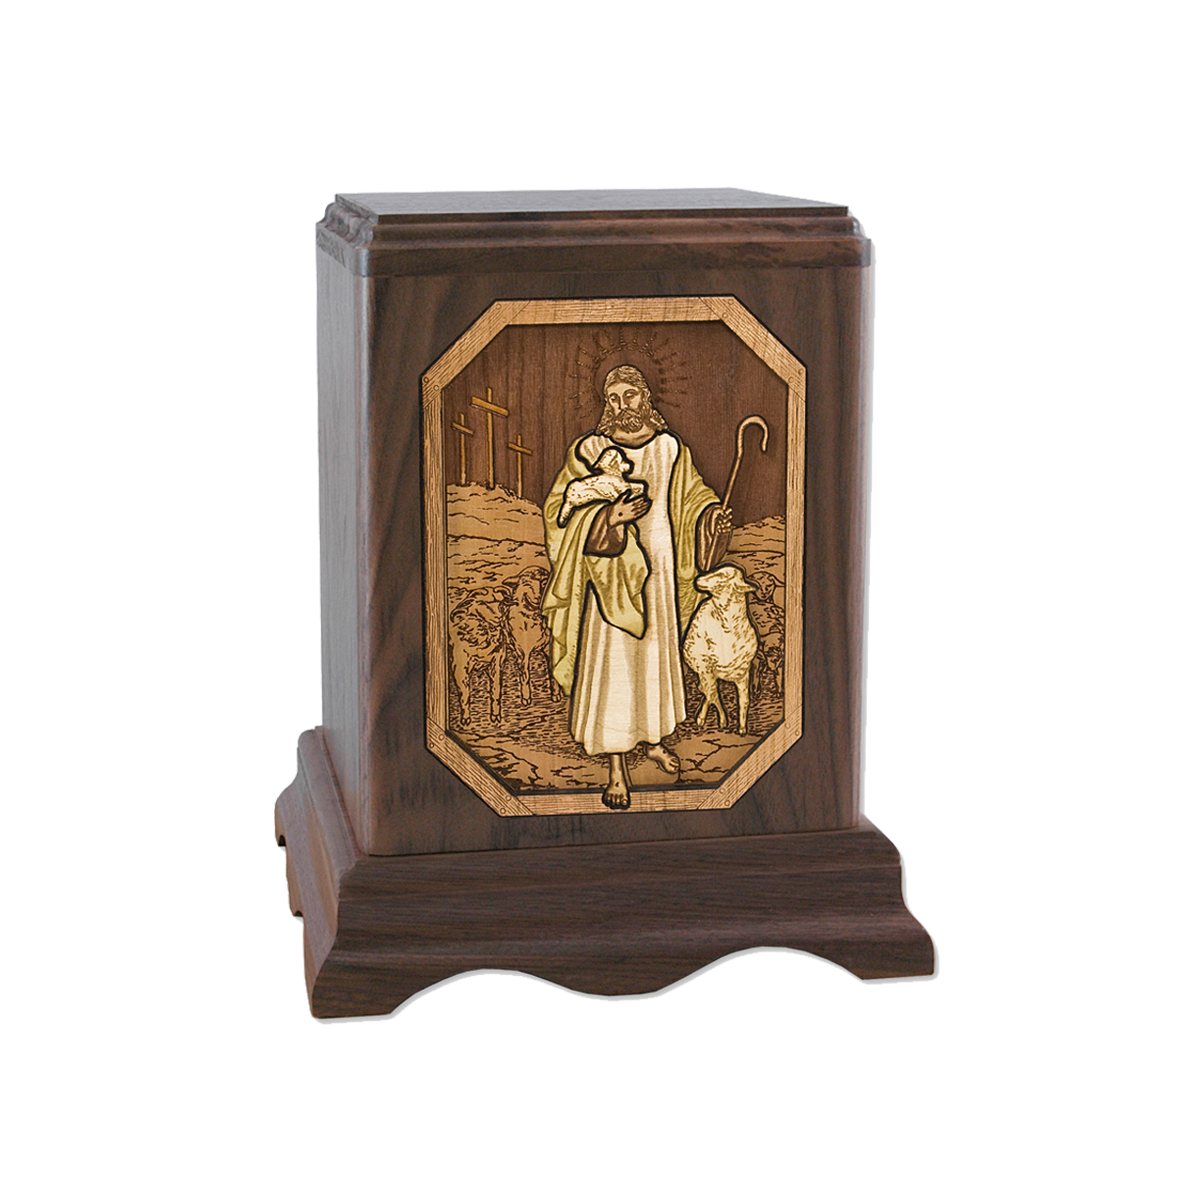 The Lord is my Shepherd 3D Engraved Urn